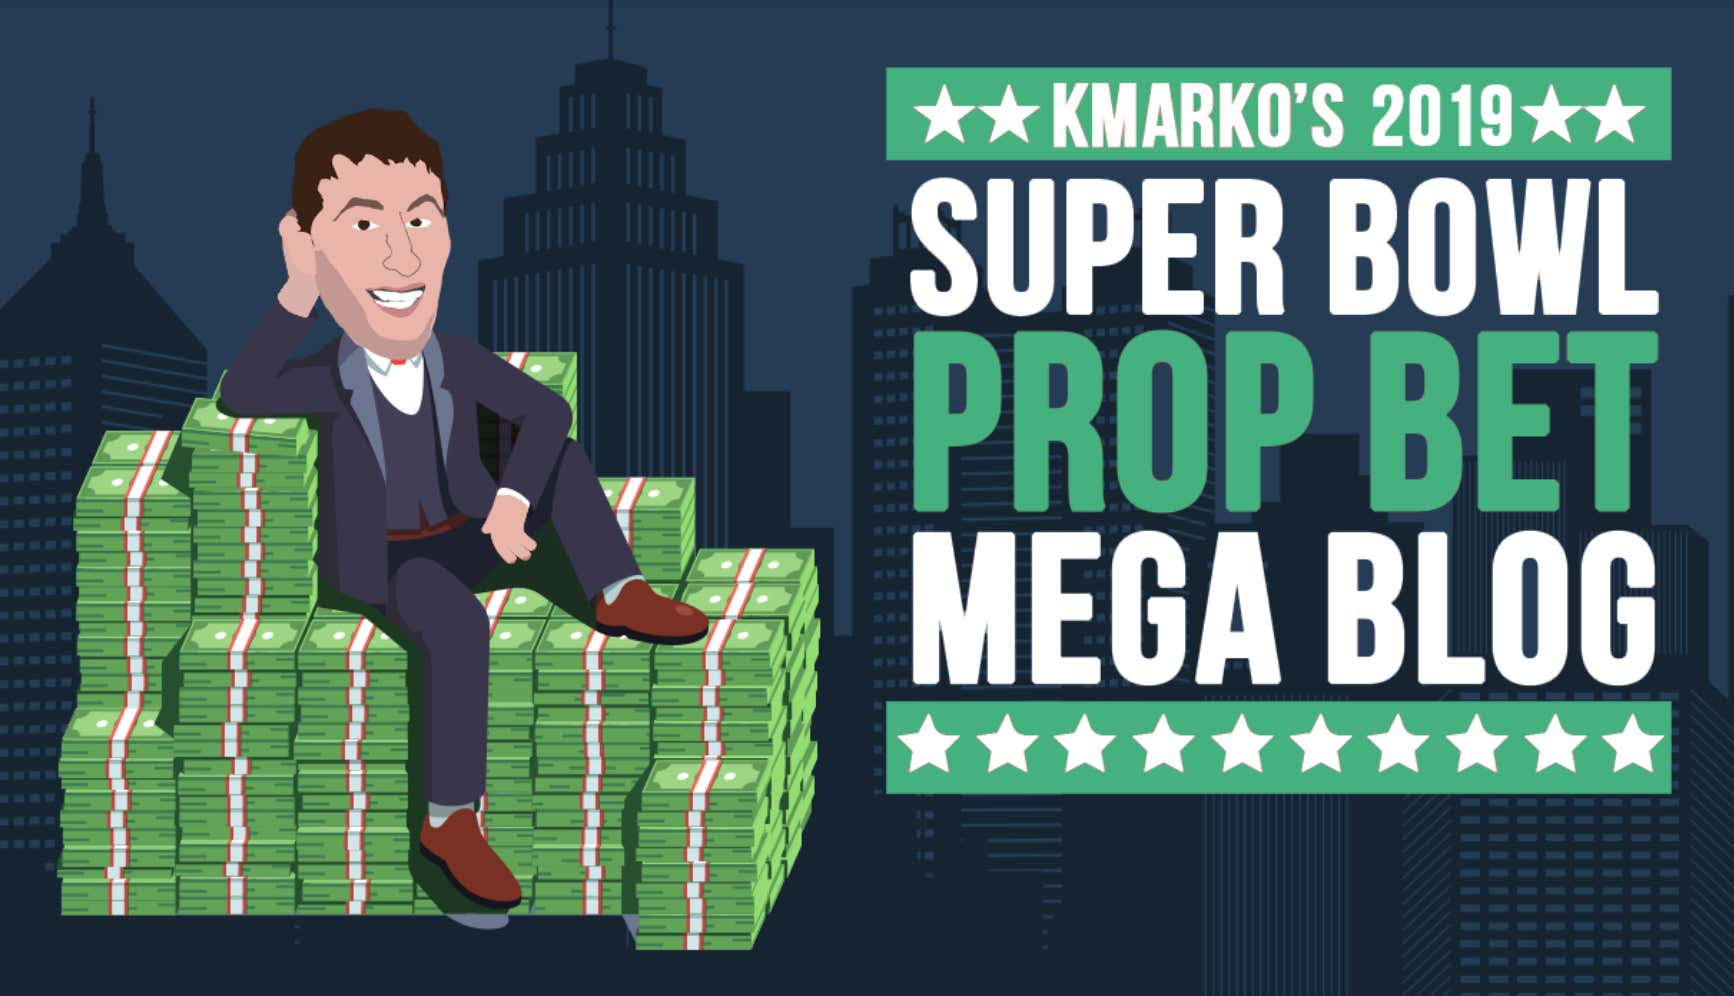 dd18a40996 Kmarko s 2019 Super Bowl Prop Bet Mega Blog - Barstool Sports